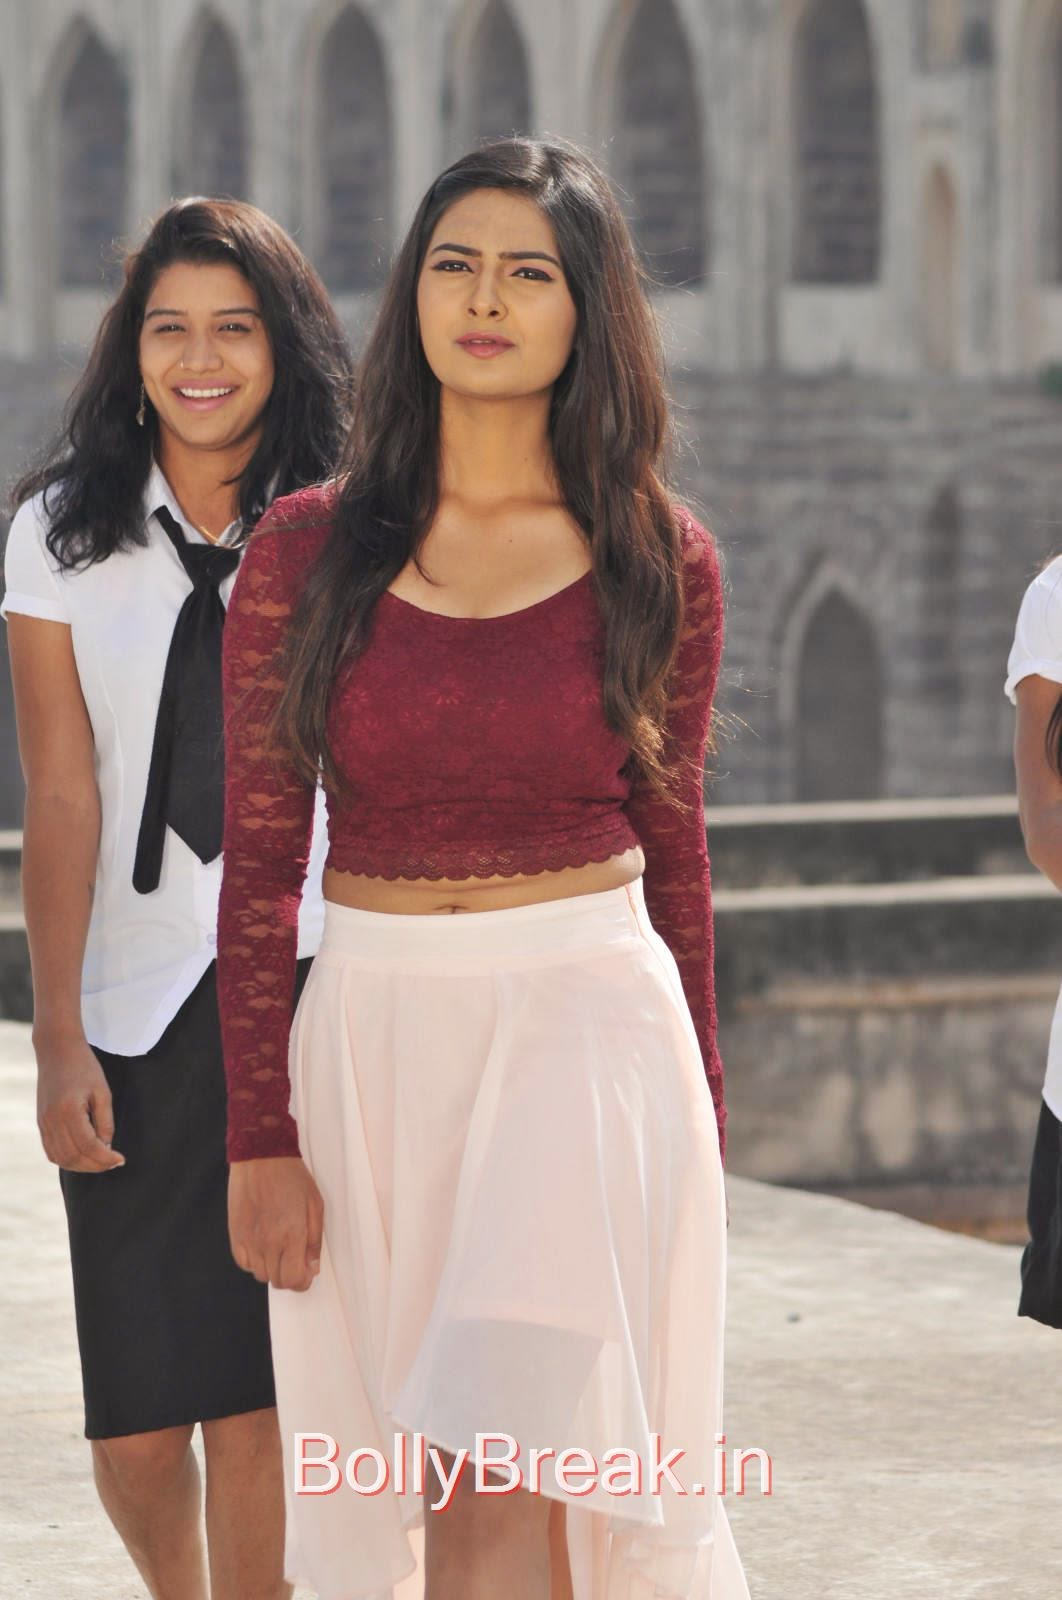 Neha Deshpande Photos in Maroon Top From The Bells Movie, Actress Neha Deshpande Hot HD Stills from The Bells Movie